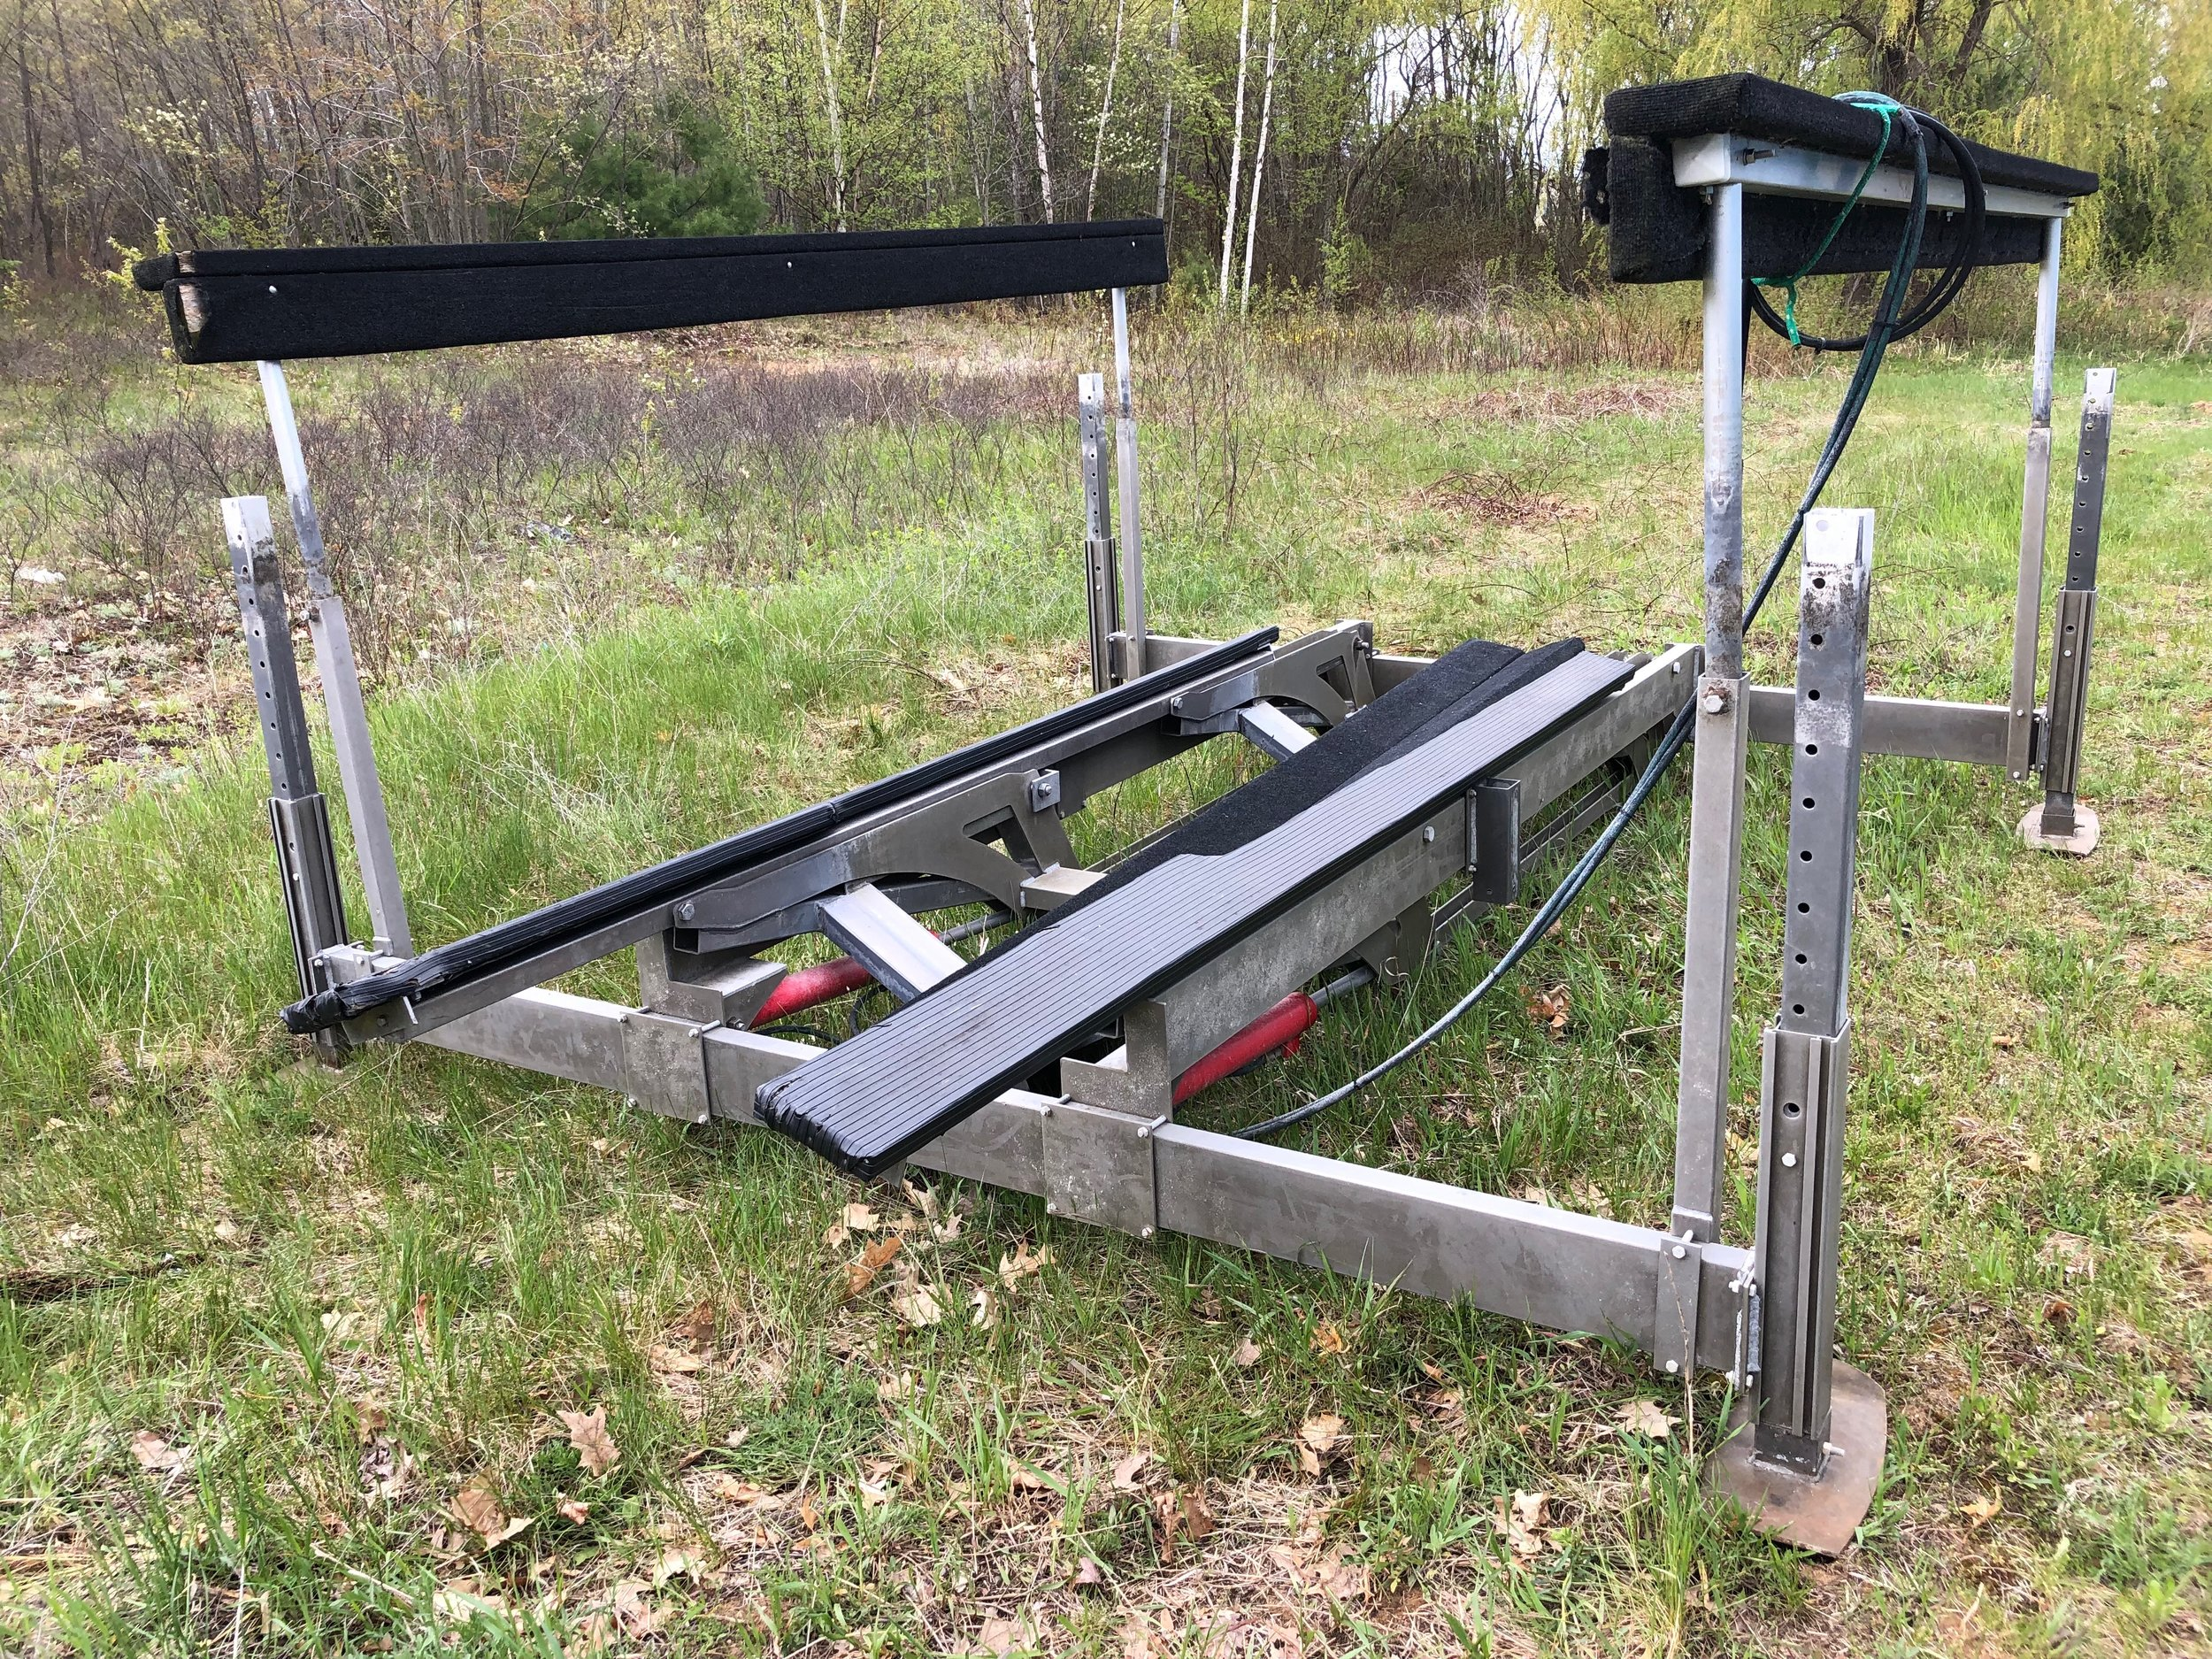 4400 lb Summit Hydraulic Lift - 2010 Summit Hydraulic Lift with Vinyl Bunks and wheel kit. Great shape, everything works as it should. Priced at $3,500 O.B.O. Delivery and Install available at additional cost.